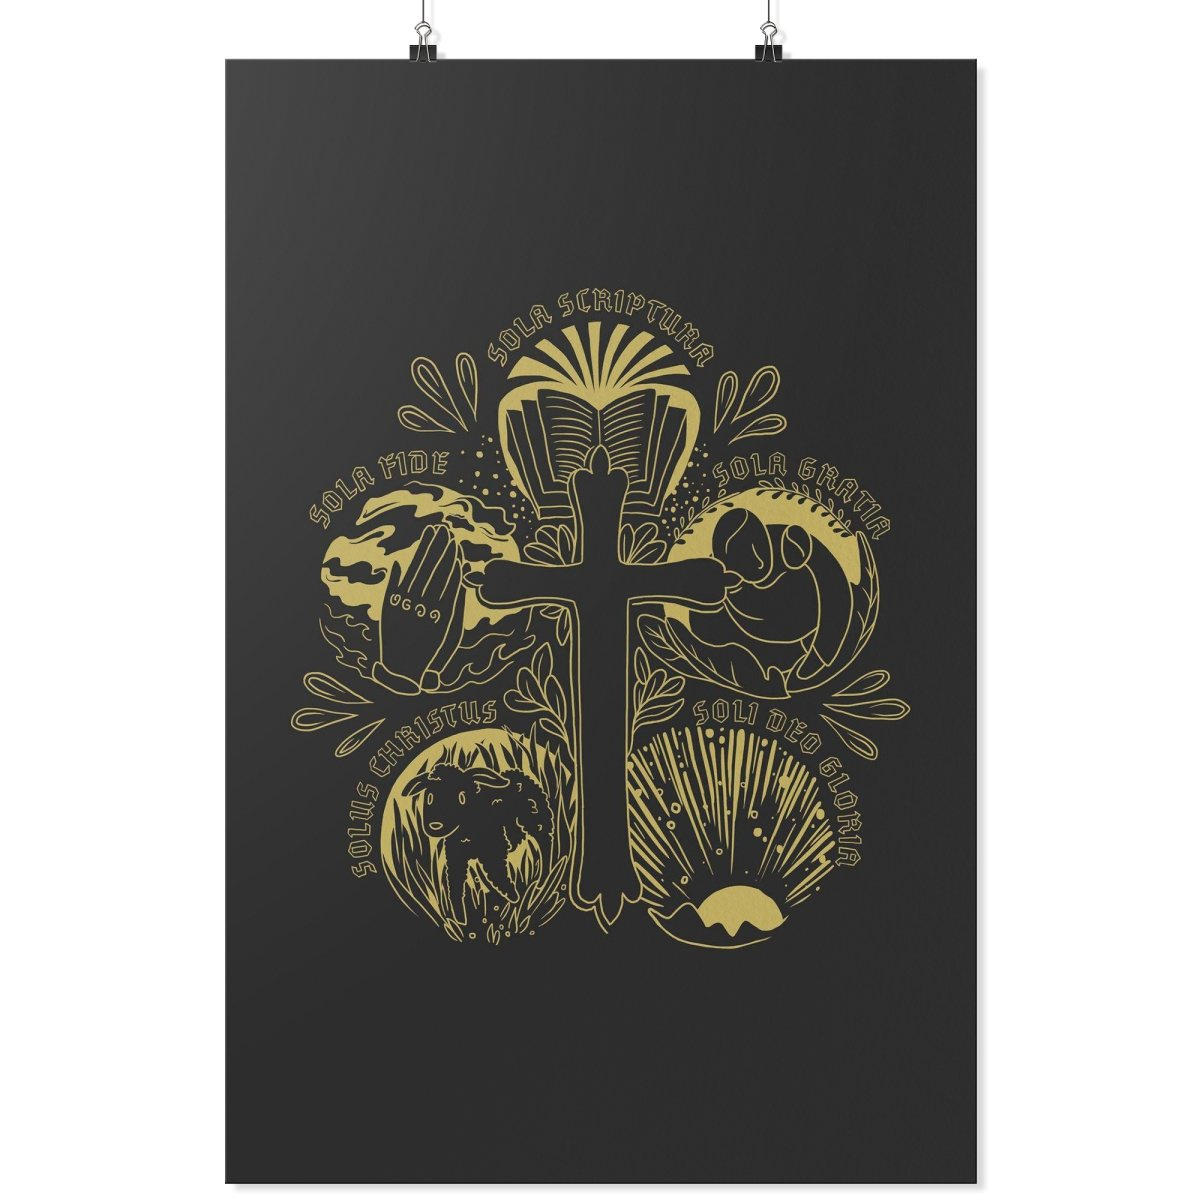 5 Solas (Wall Poster) - SDG Clothing